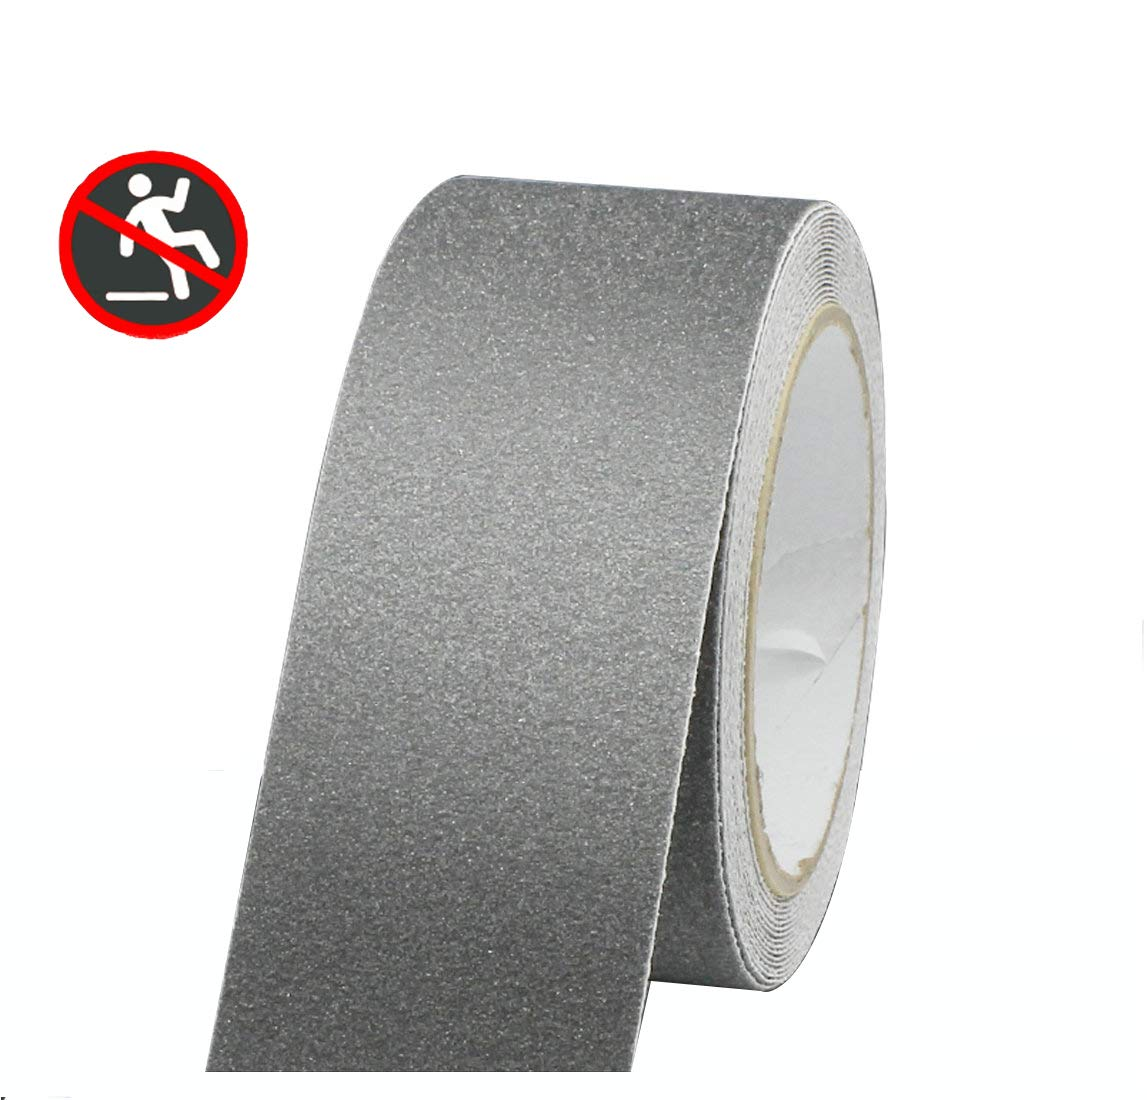 Professional Non-Slip Safety Tape, High Traction Grip for Stairs, Steps, Boats, Garage, Ladders, Slip-Resistant Strong Adhesive Treads, Indoor Outdoor (Width: 2 in × Length: 16.4 ft, Grey)